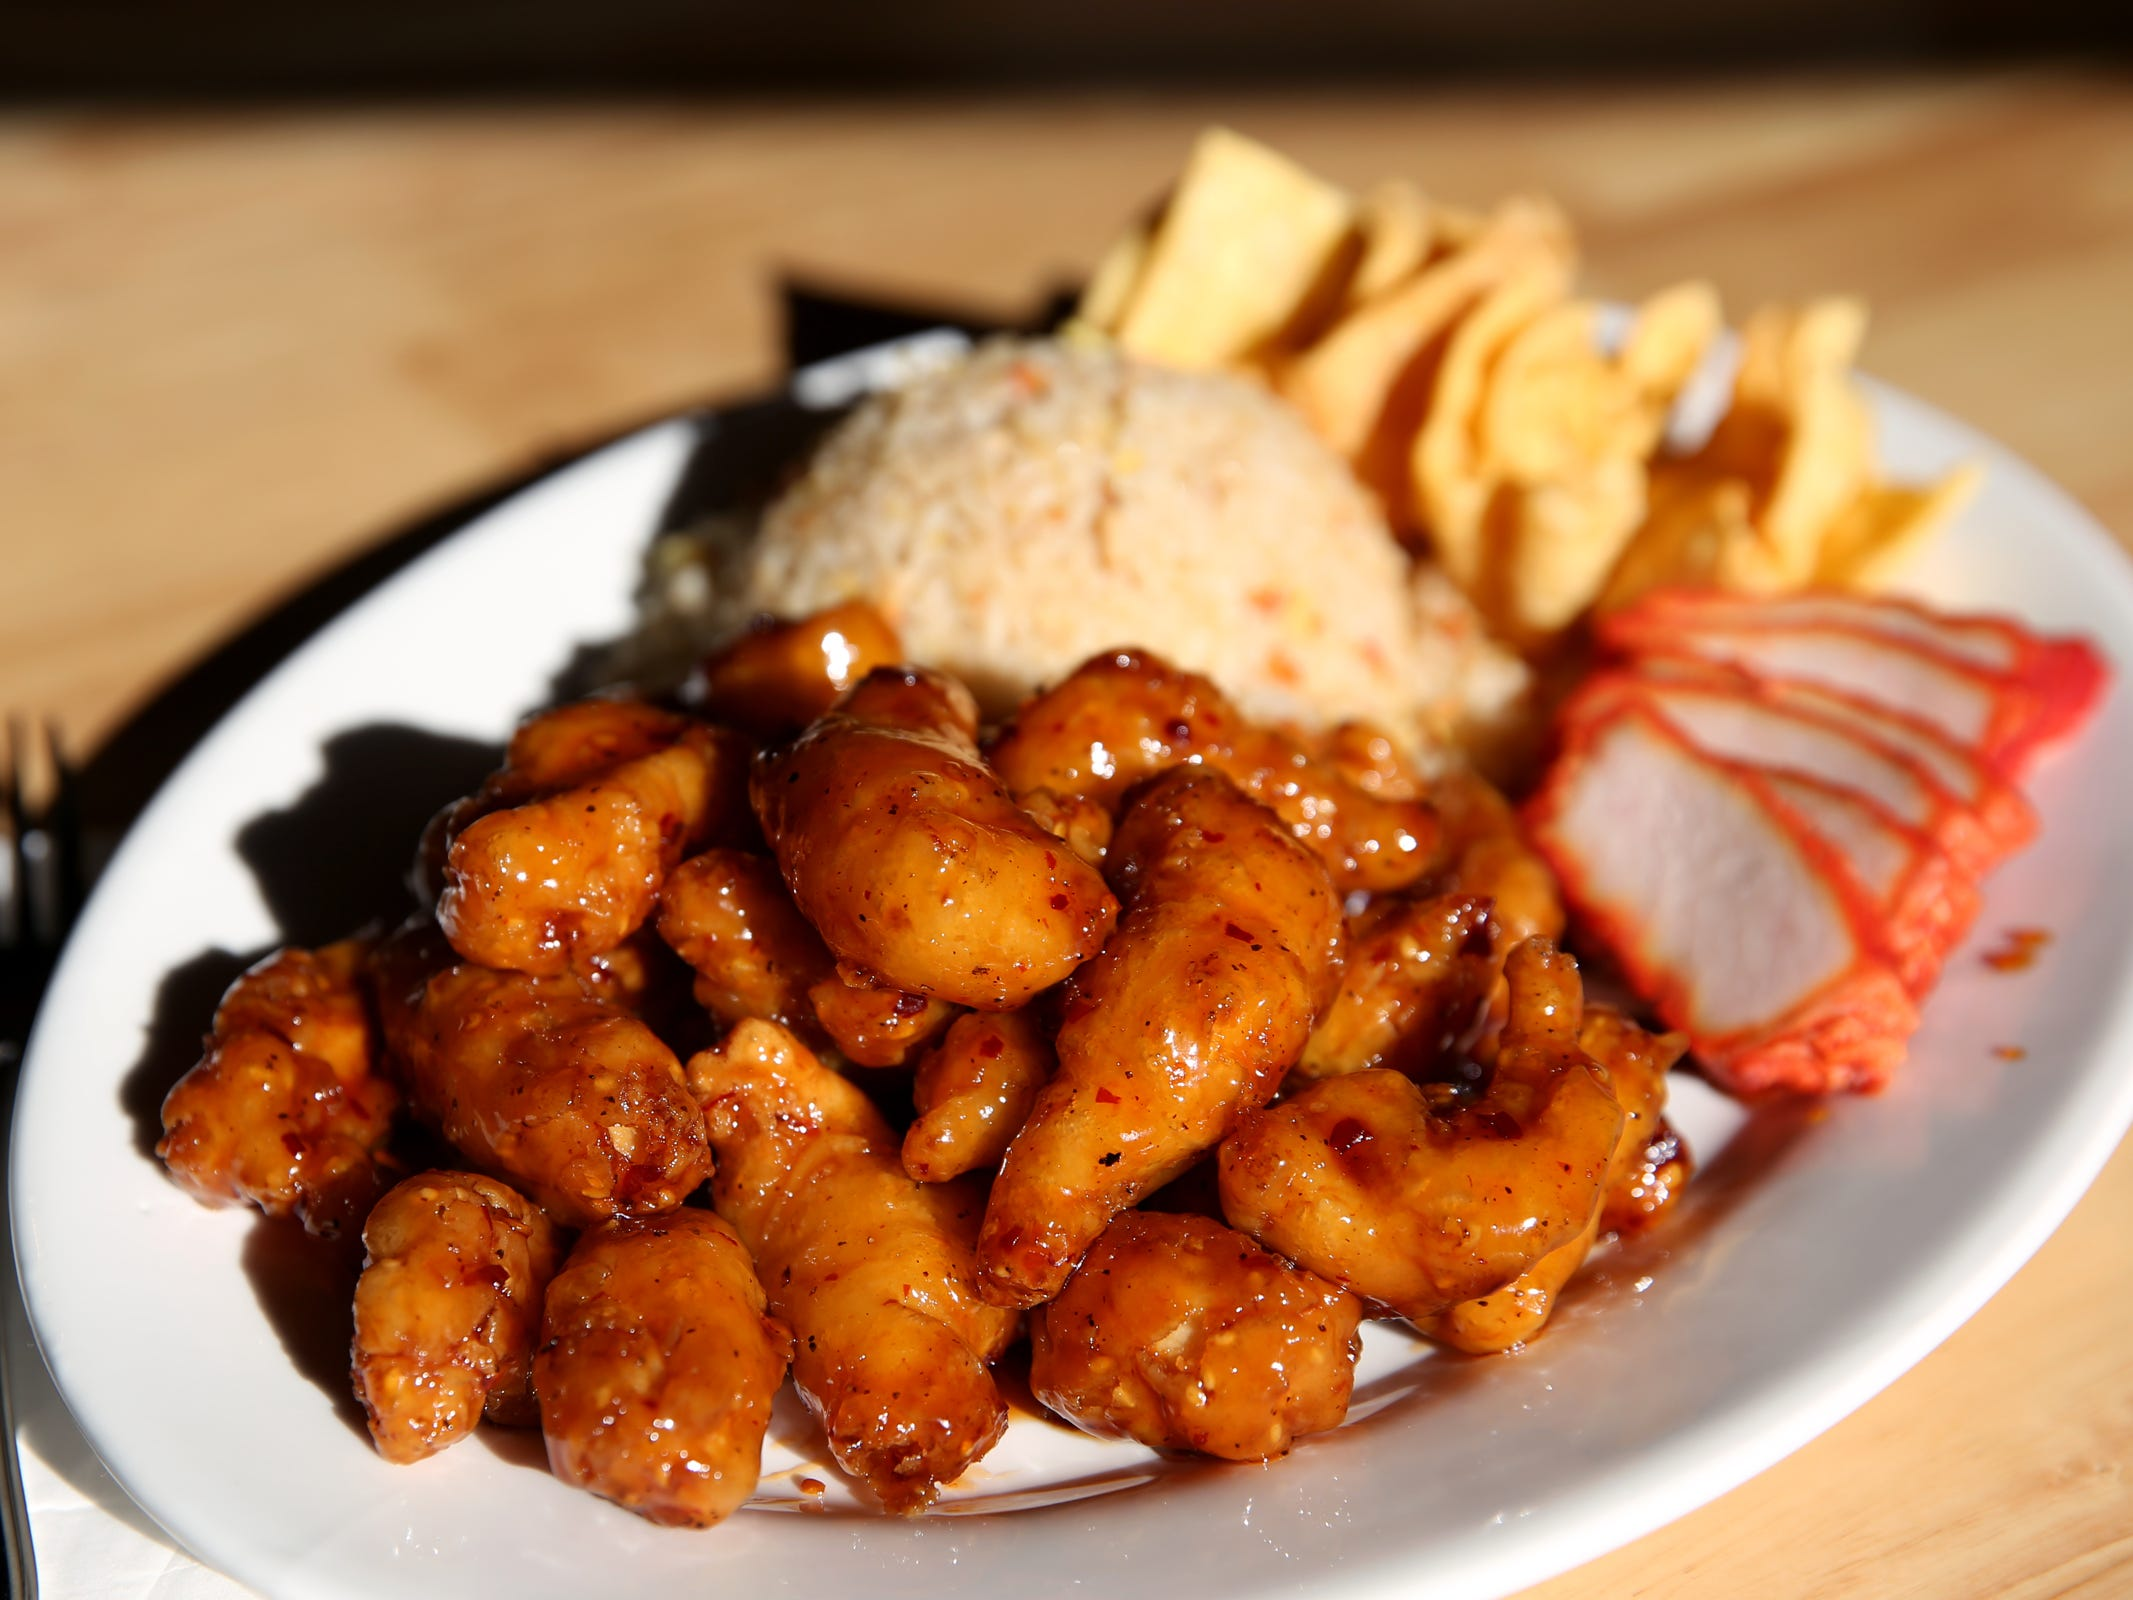 The dinner combination plate with General Tso's chicken, pork fried rice, barbecue pork and crab puffs at Chen's Family Dish in Salem on Thursday, Jan. 31, 2019.